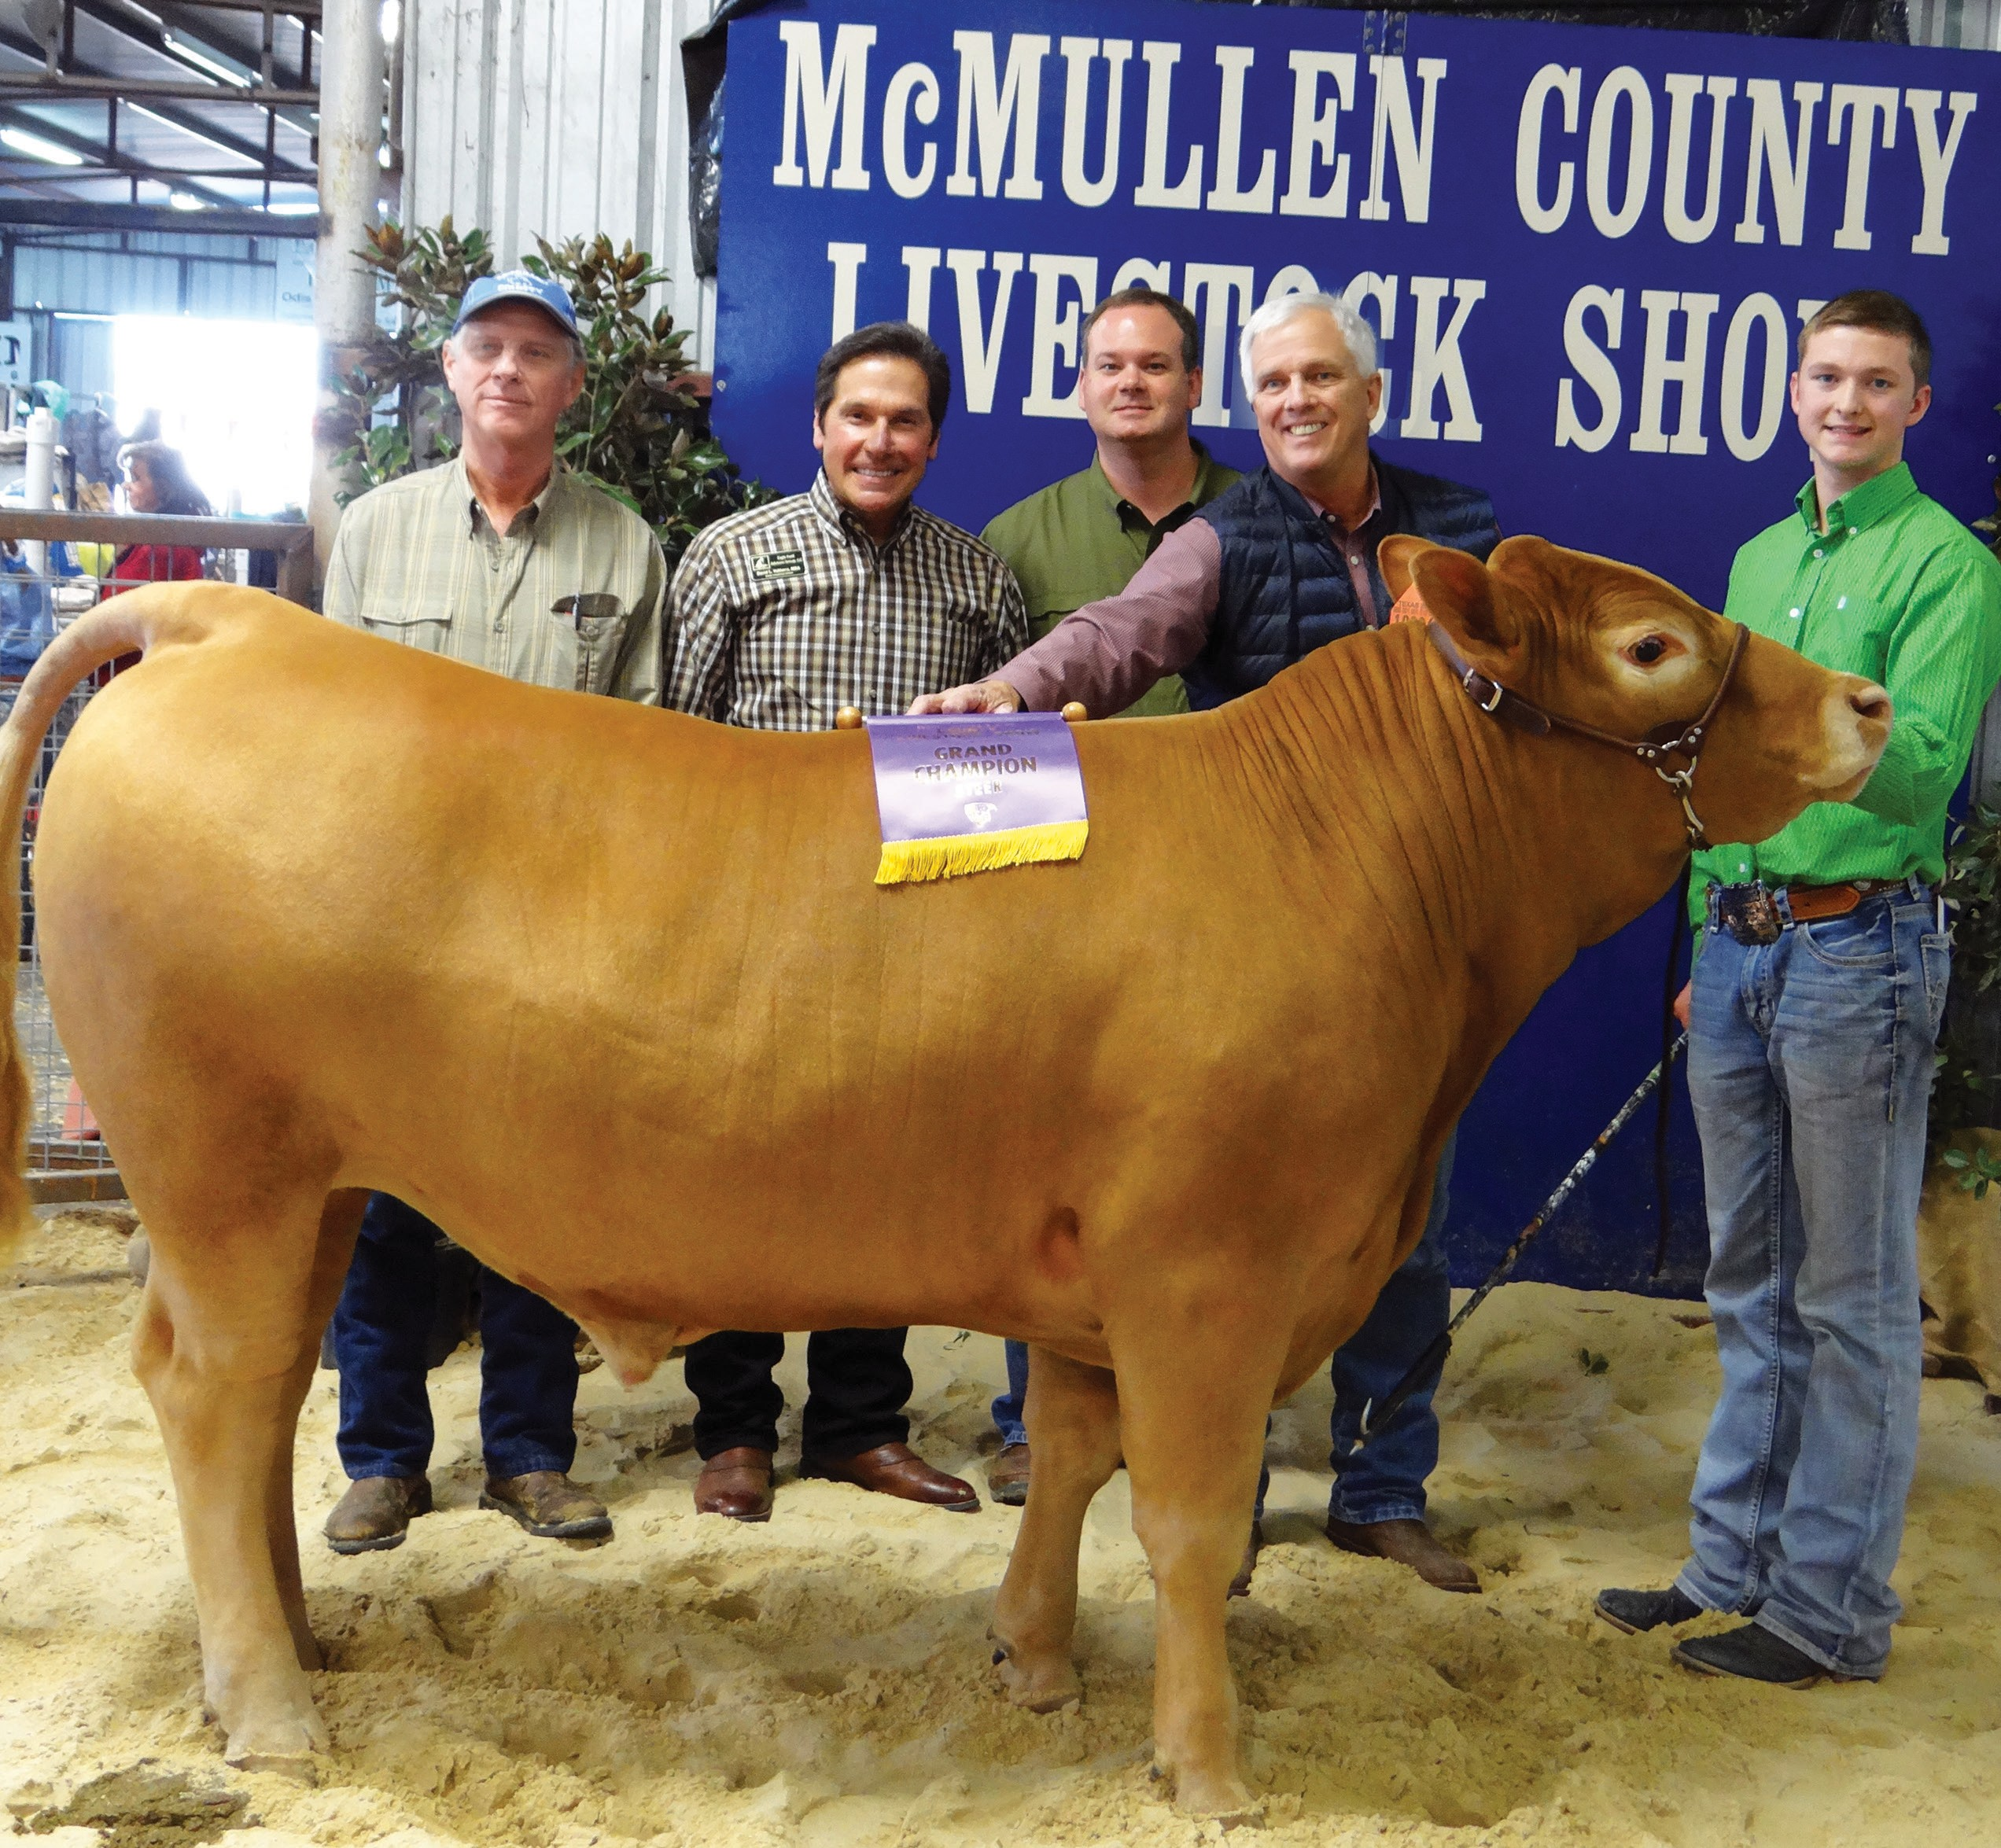 The McMullen County Livestock Show Grand Champion Steer was shown by Colton McCartney. The steer was purchased for $12,000. Buyers include, left to right, Marty Harris, San Miguel Syndicate; Dave Valtiera, Atascosa Syndicate; Dave Underwood, School House Syndicate and Walt Franklin, Atascosa Syndicate. Not pictured is Jim Wheeler, Atascosa County Livestock Exchange